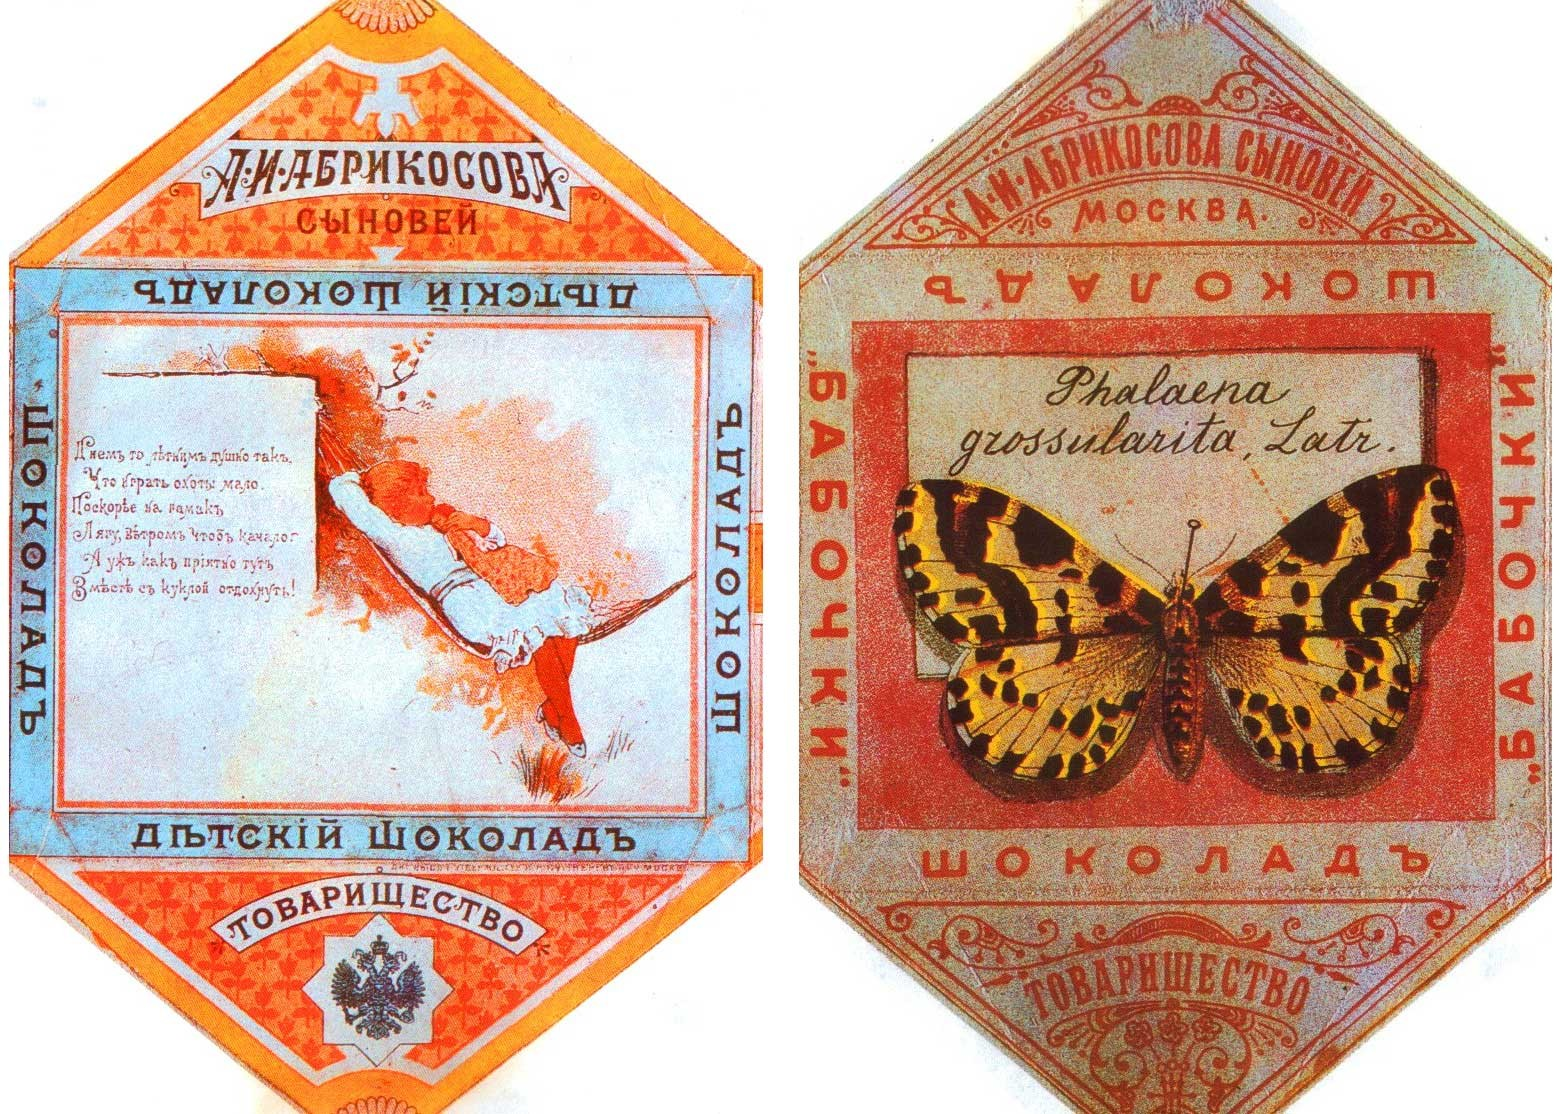 Abrikosov's candies